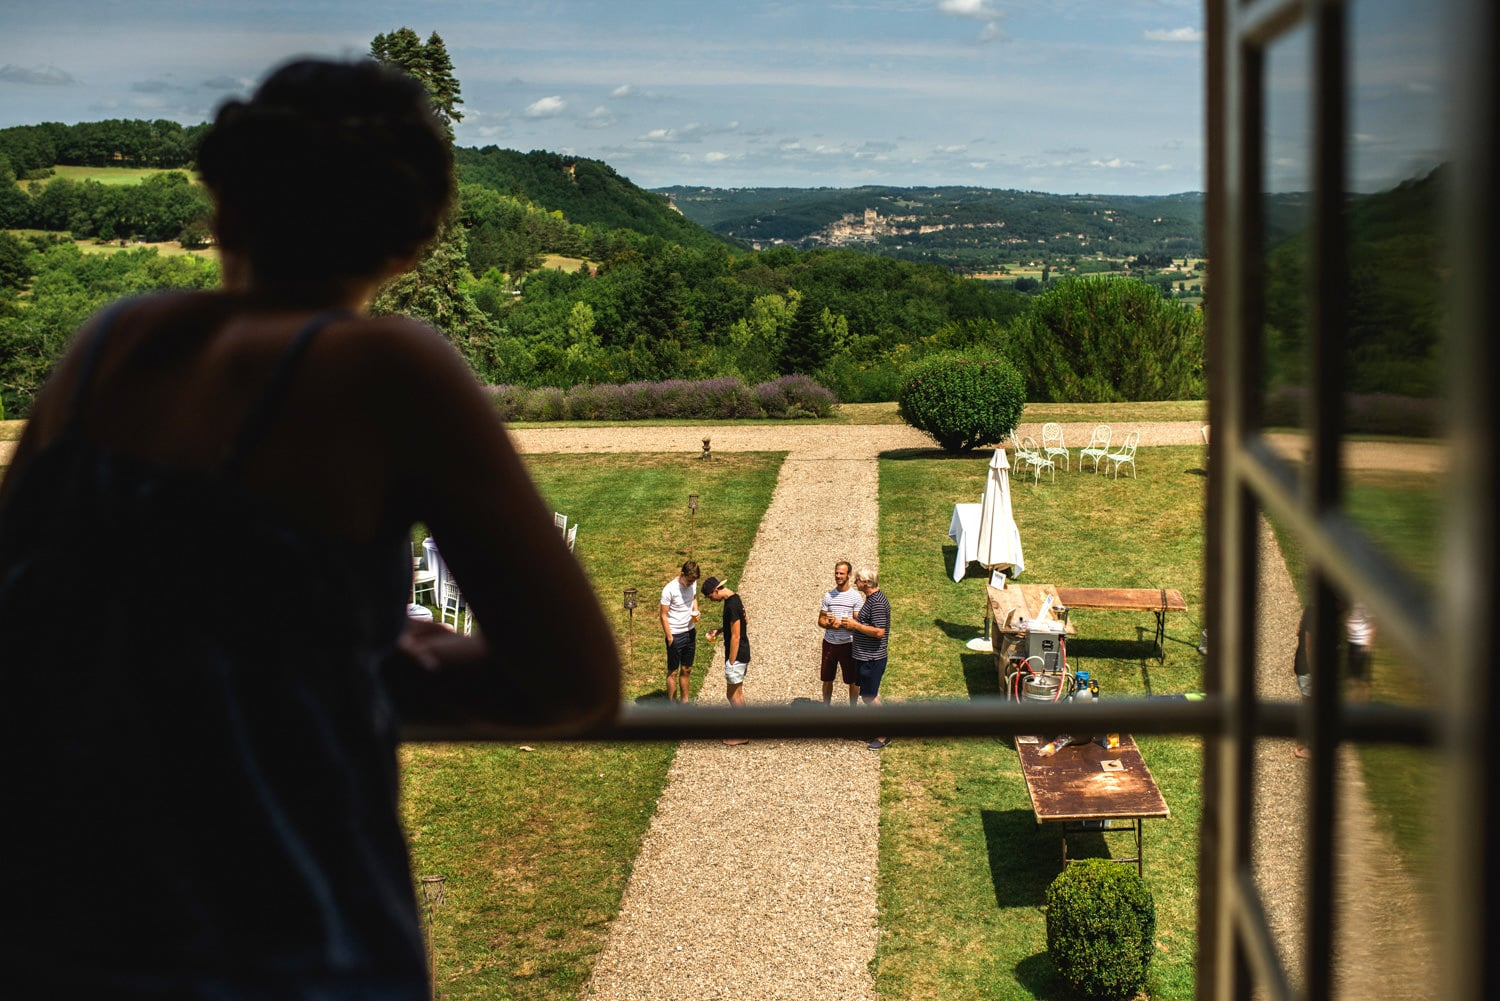 view out window of Chateau de Lacoste France